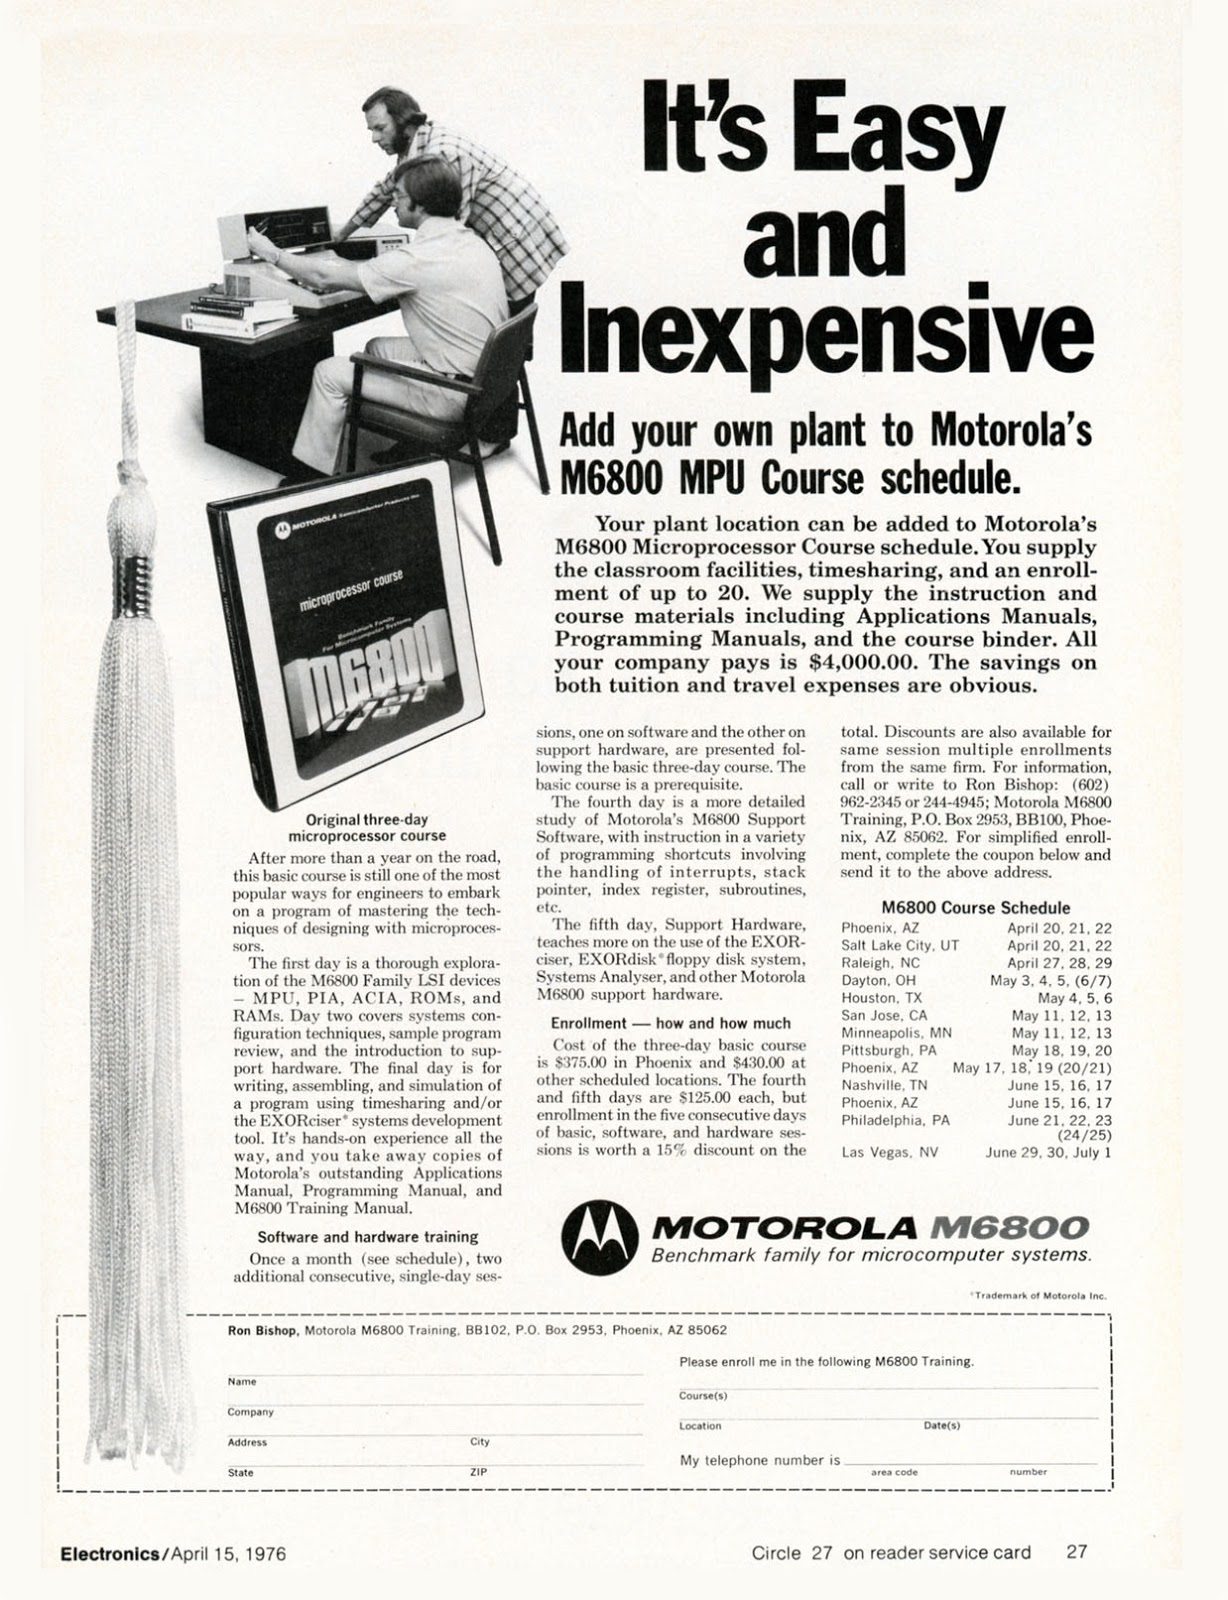 Old Ads Are Funny: 1976 ad: Motorola's M6800 MPU Course